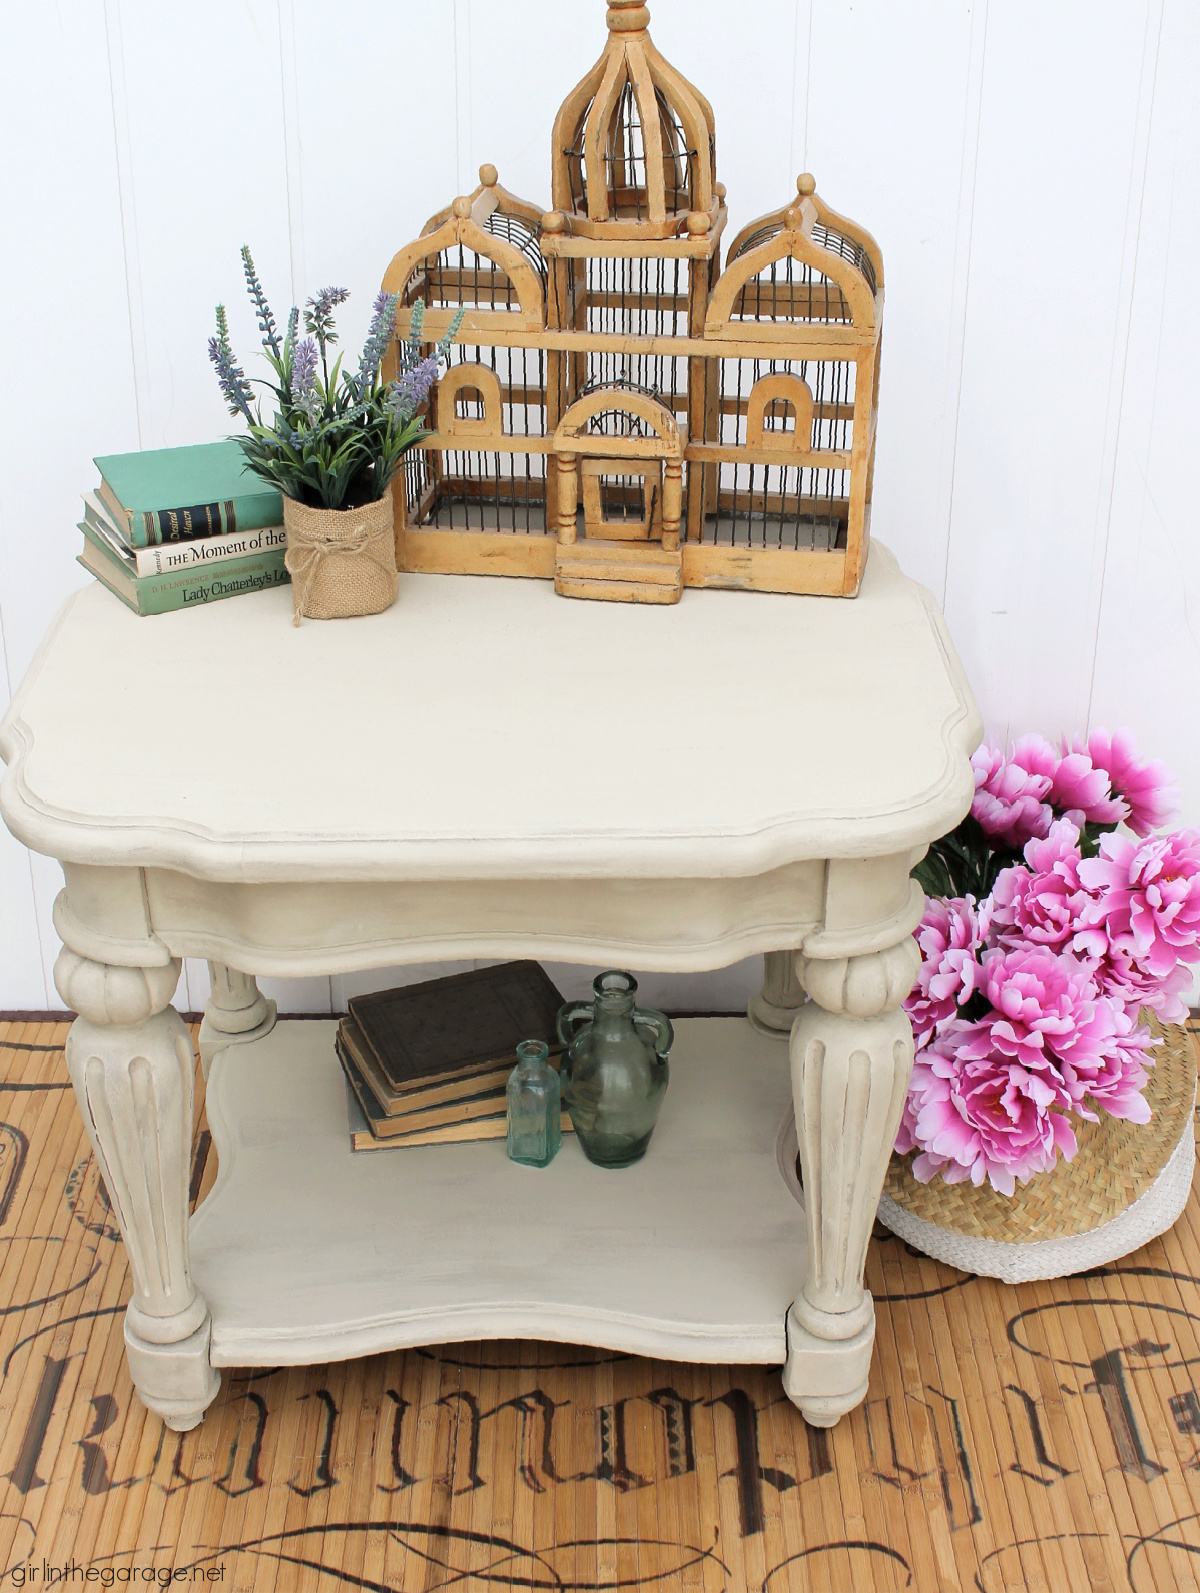 Learn how to paint a driftwood finish with Chalk Paint on a wooden table. Painted furniture ideas by Girl in the Garage